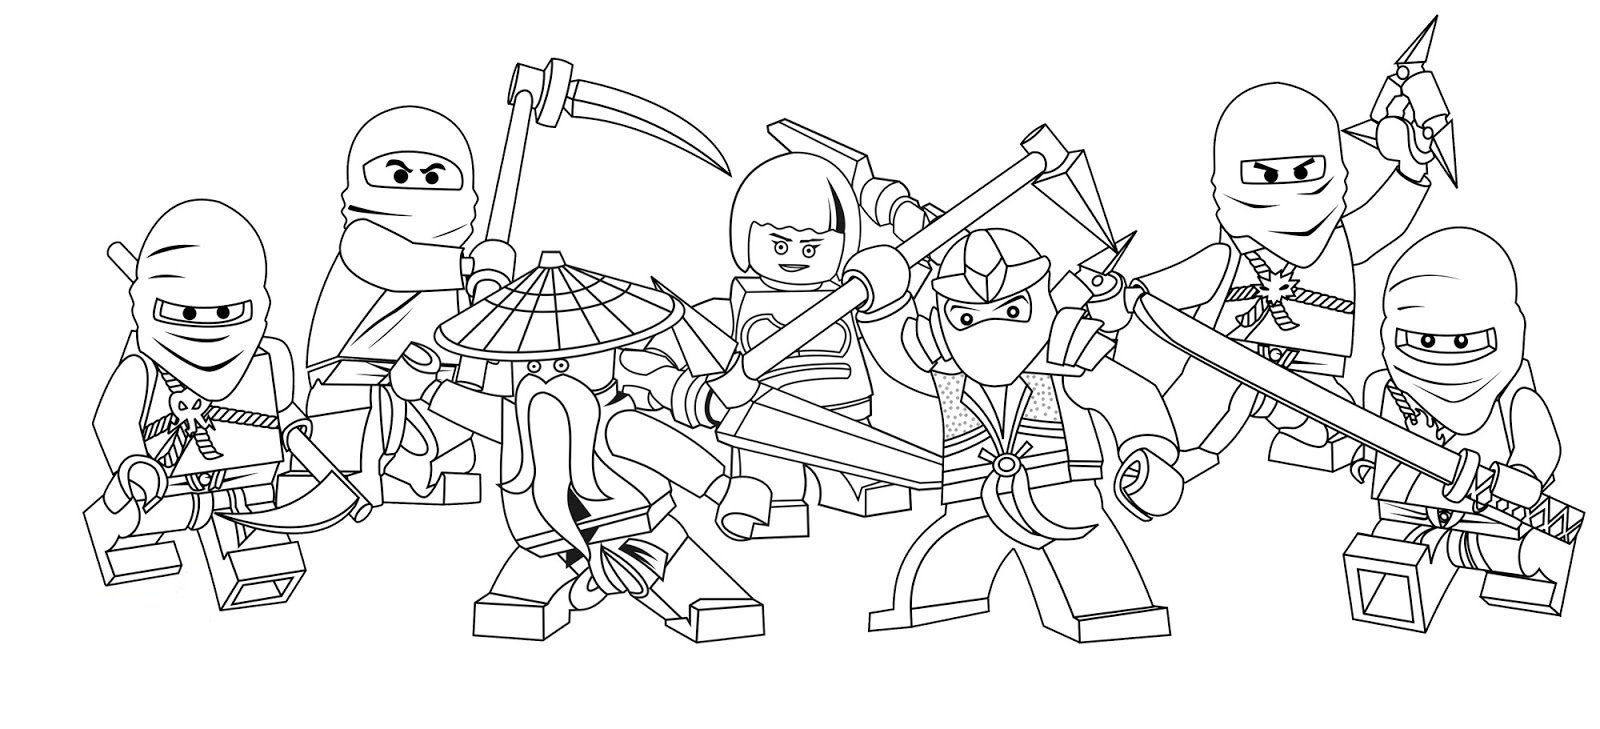 Unique Free Printable Ninjago Coloring Pages 60 For Your Coloring